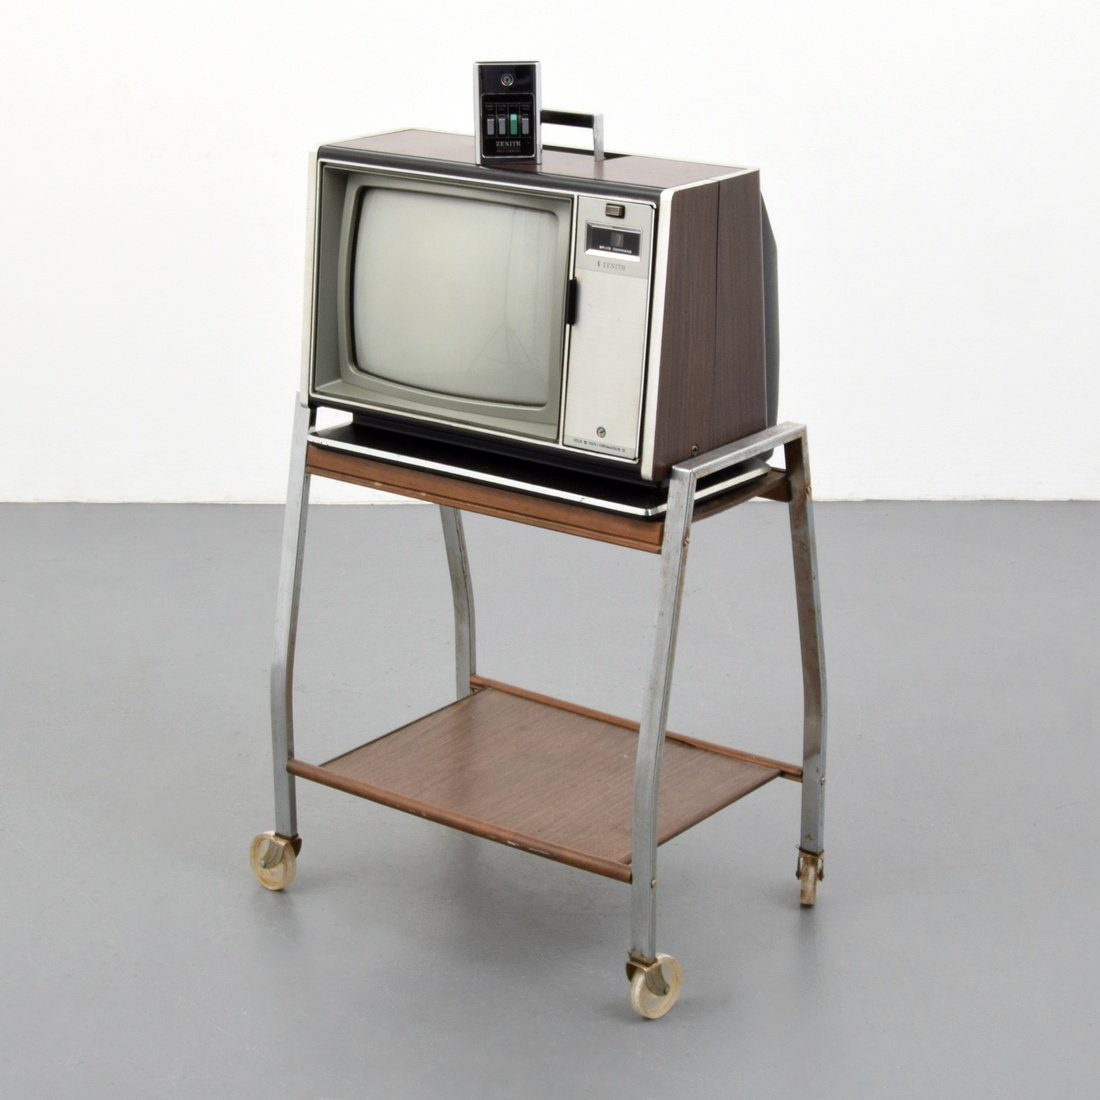 Zenith SPACE COMMAND Television, Remote & Cart